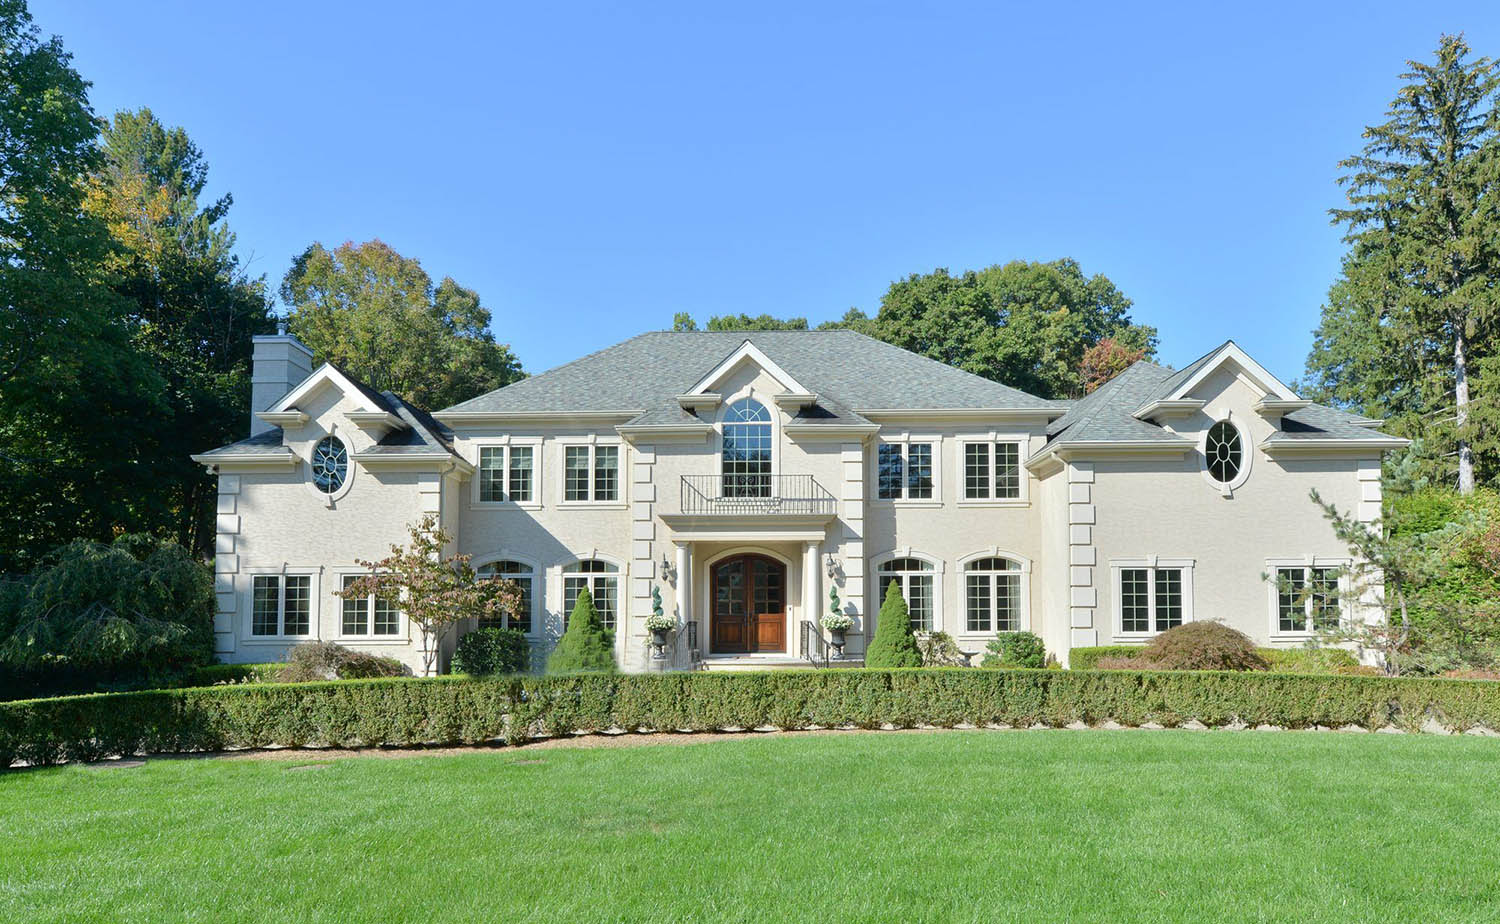 estate home with white brick siding and stained brown real wood front door